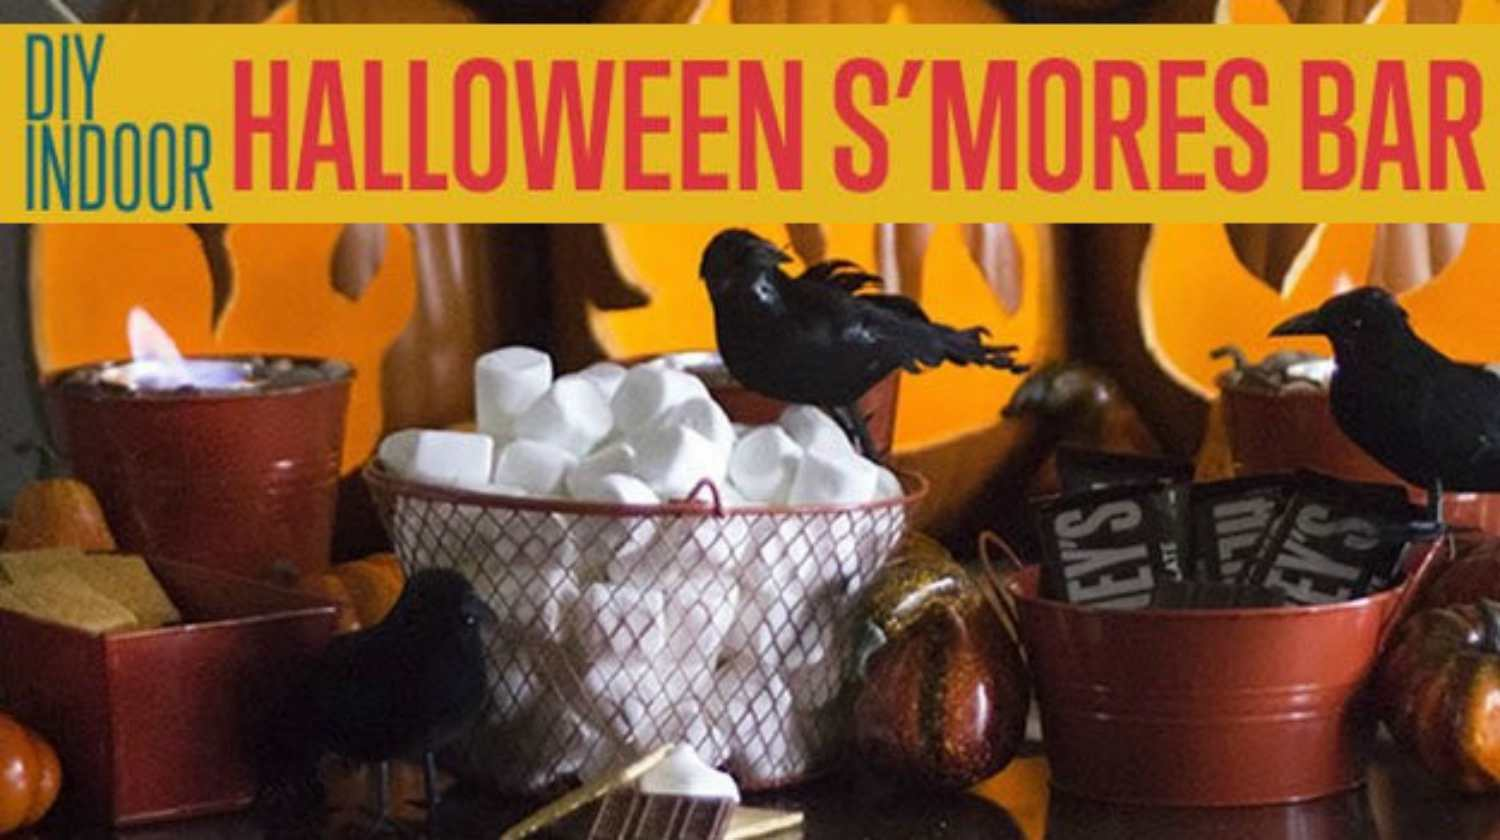 indoor halloween s'mores | DIY Halloween S'mores Bar Food Idea For An Indoor Party | halloween s'mores bar | smores bar how to | Featured